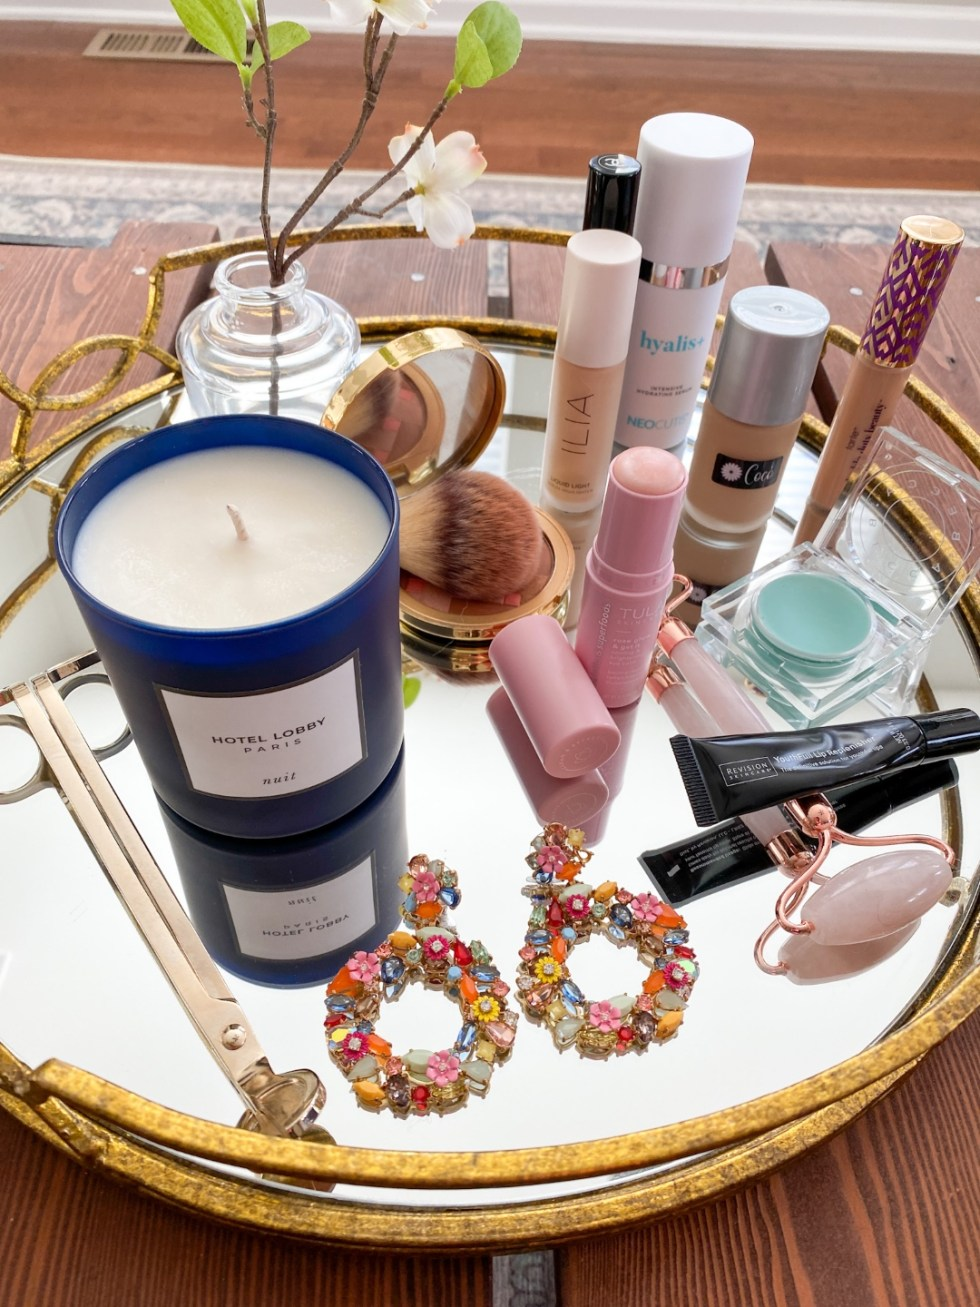 Best Makeup Products by popular NC beauty blog, I'm Fixin' To: image of various beauty products, floral statement drop earrings, and a Hotel Lobby candle on a mirrored gold tray.